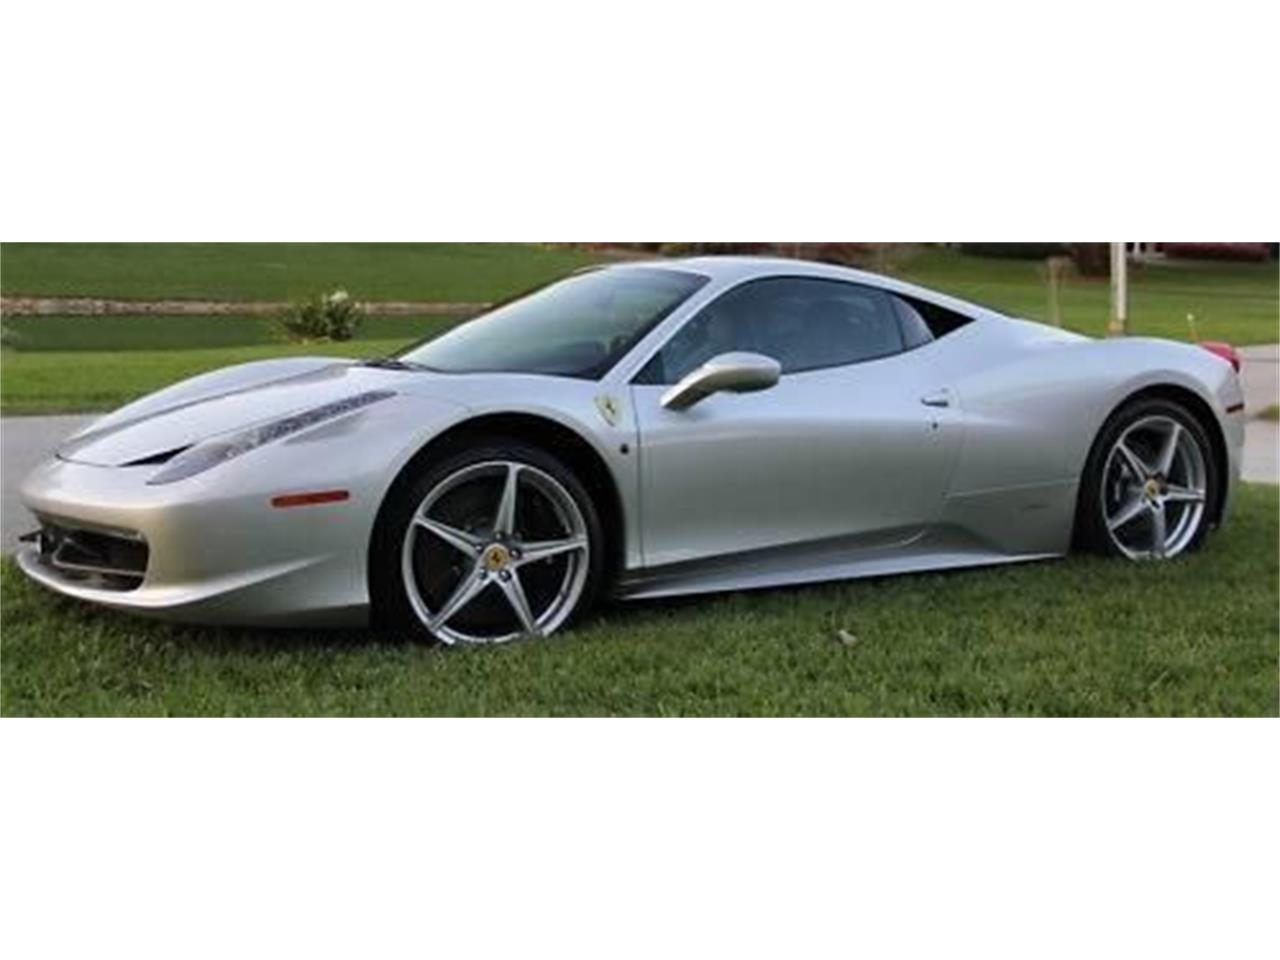 Large Picture of '11 Ferrari 458 Italia located in Michigan Offered by Classic Car Deals - R3V3